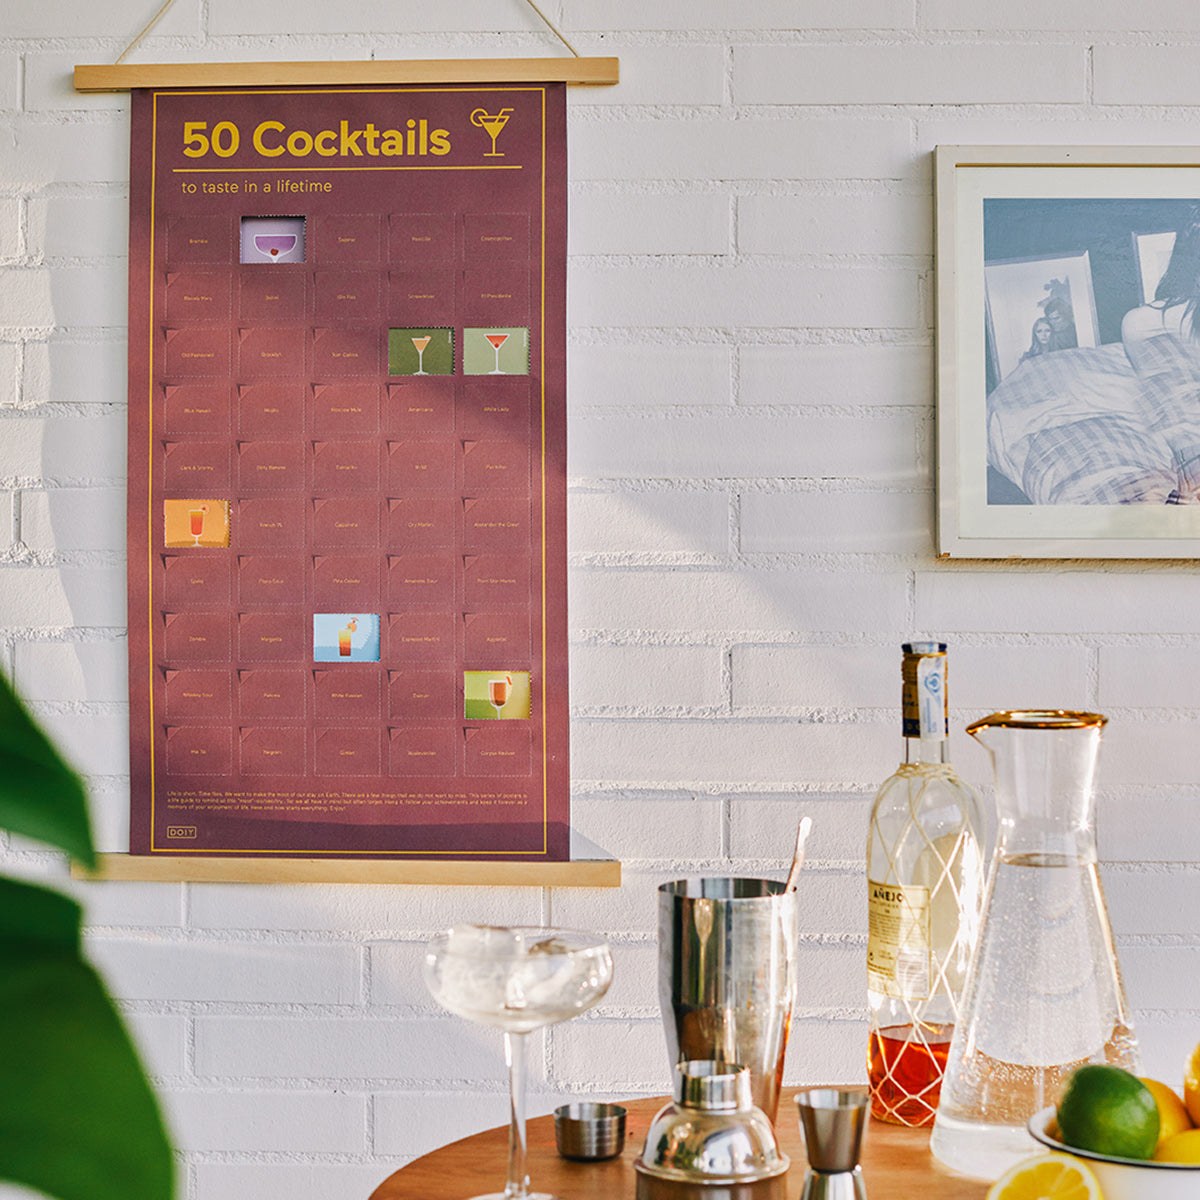 50 cocktails to taste in a lifetime poster